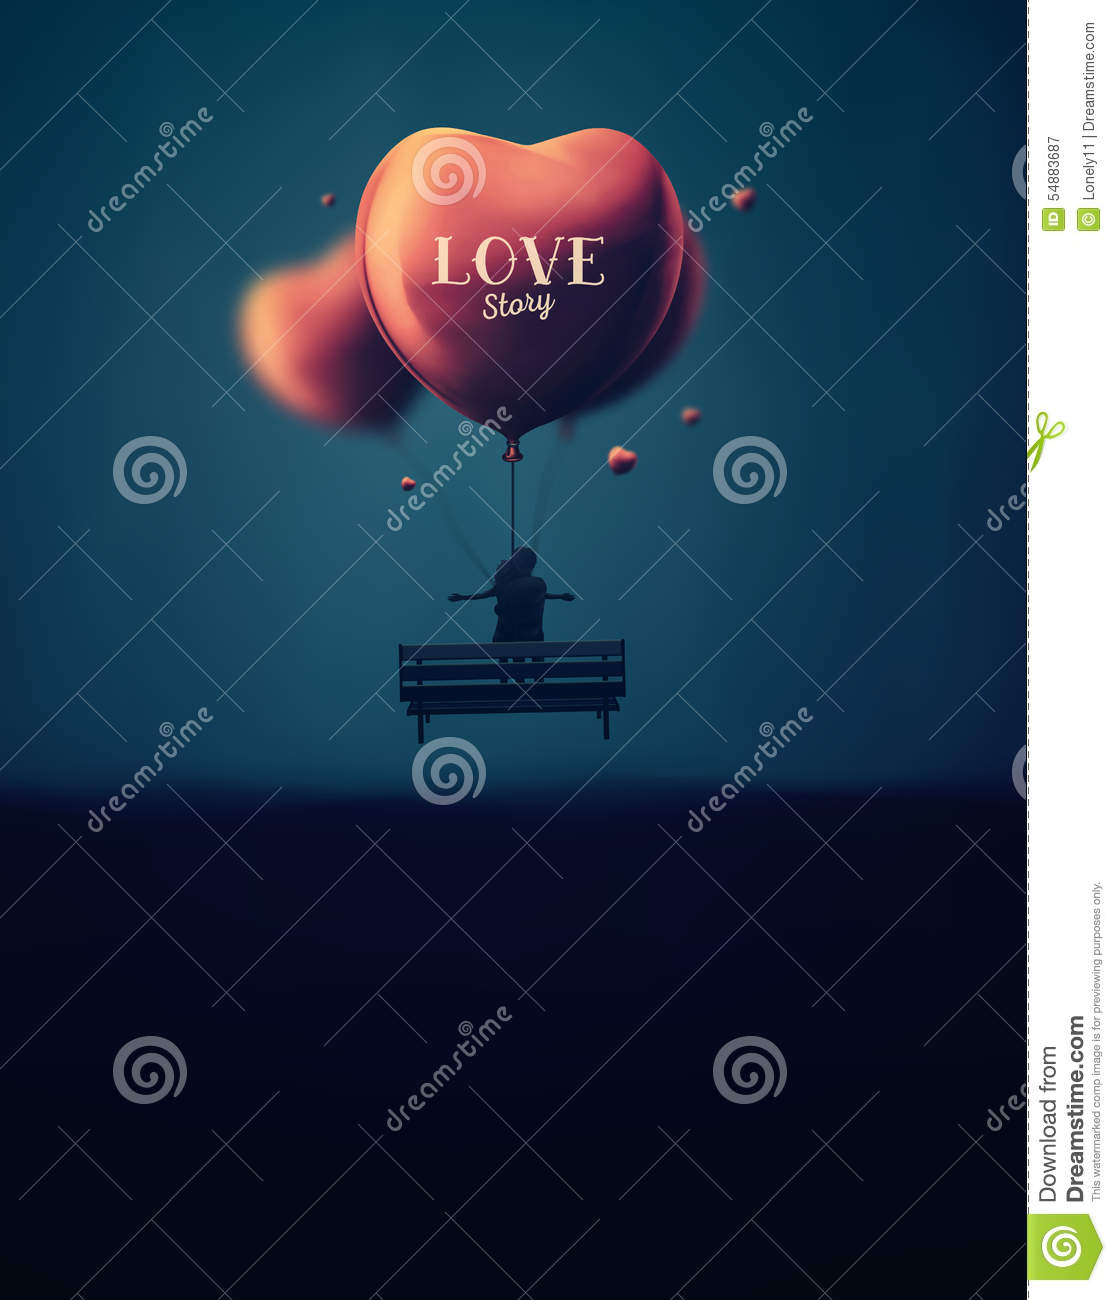 love stories about online dating Share your 100-word story love stories inspiring stories amazing survival stories jokes  the fbi received 12,509 complaints related to online-dating fraud, .